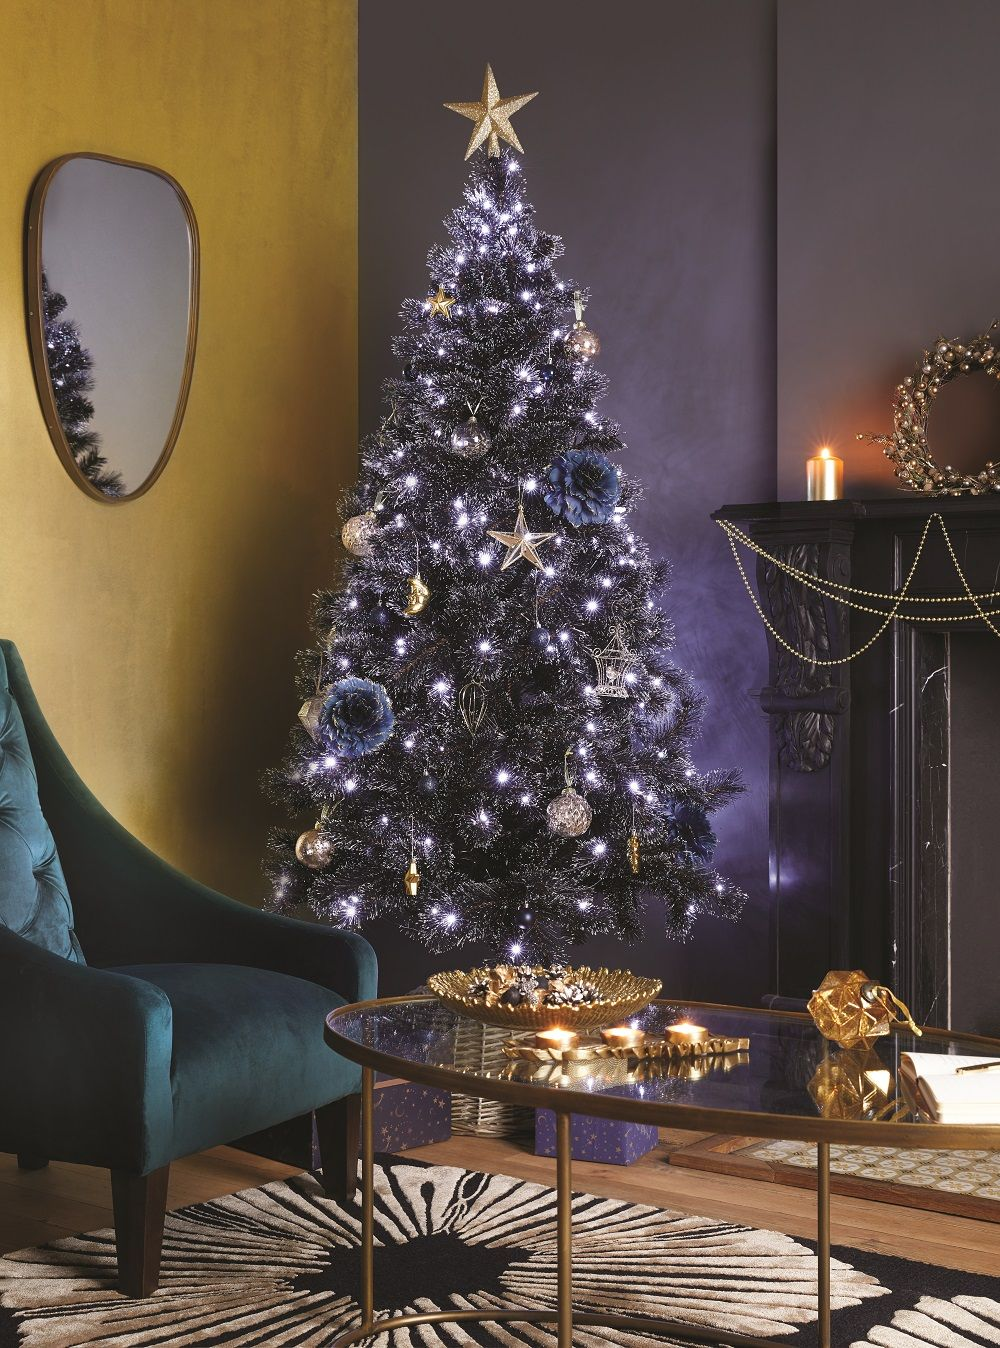 Festive Charm Inspired By Iconic Art Deco Style Holiday Decor Gold Christmas Shop Decoration